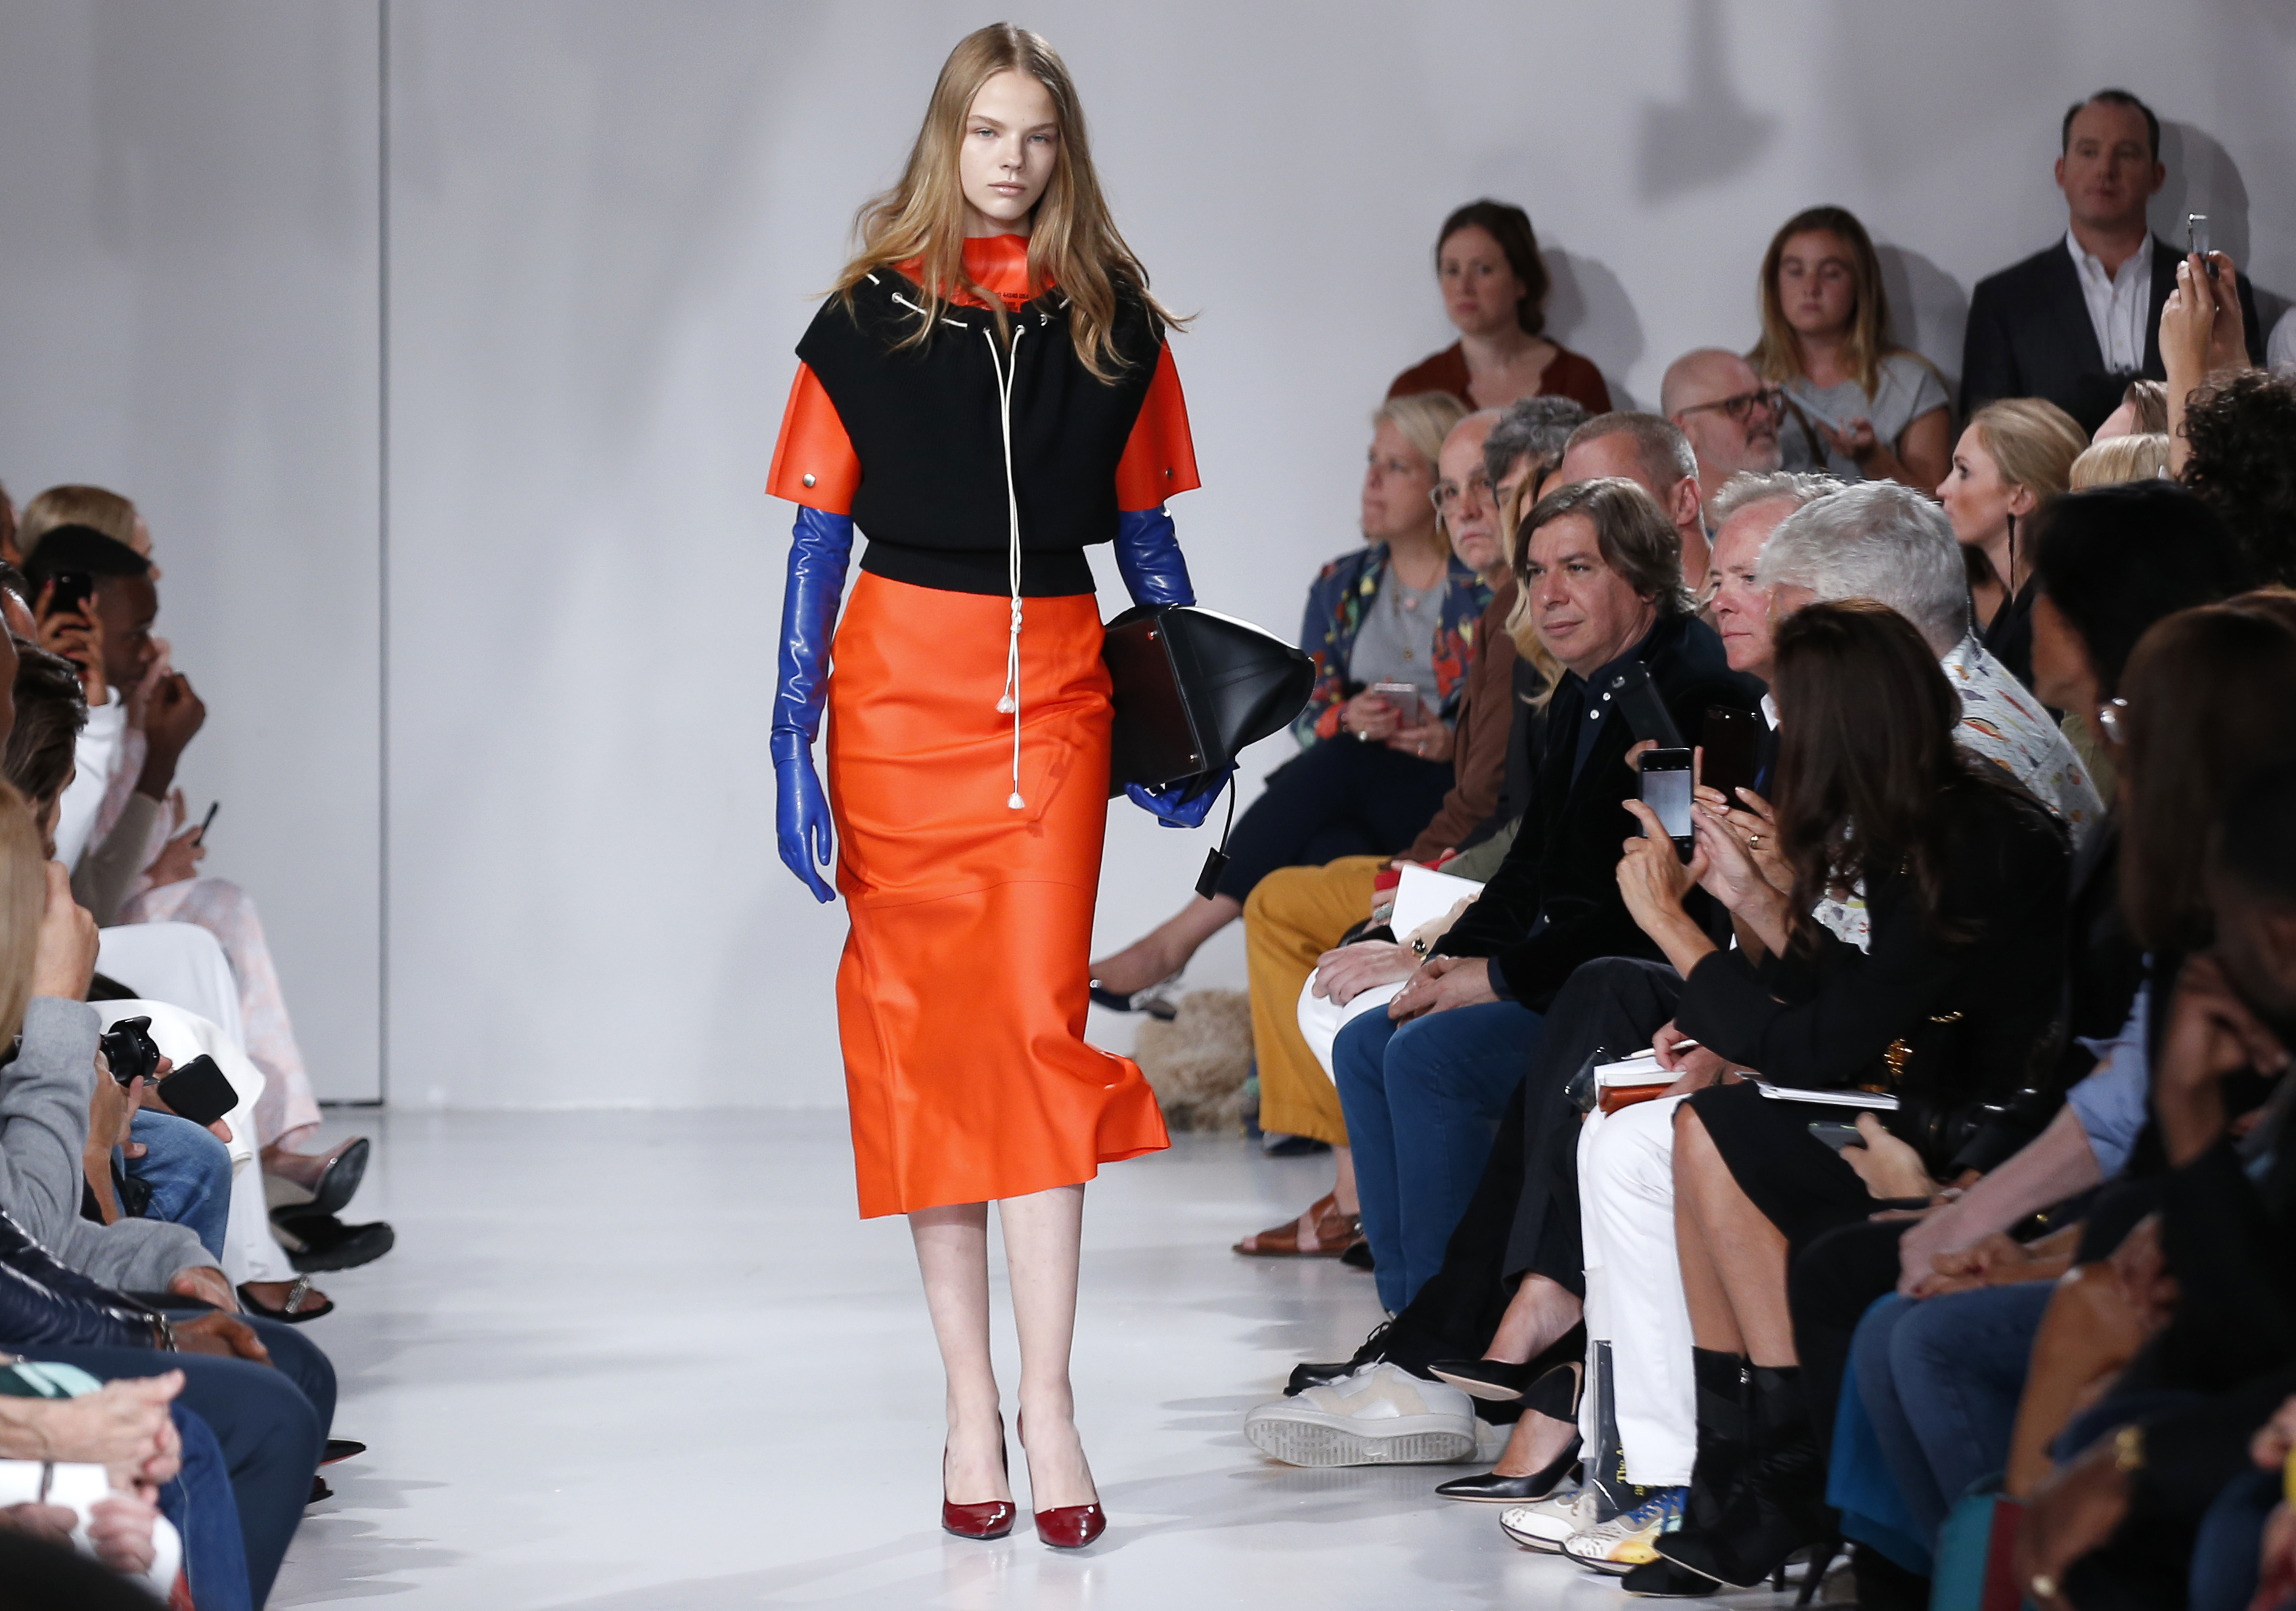 Cindy Crawford's Model Daughter Kaia Gerber Makes Her Runway Debut